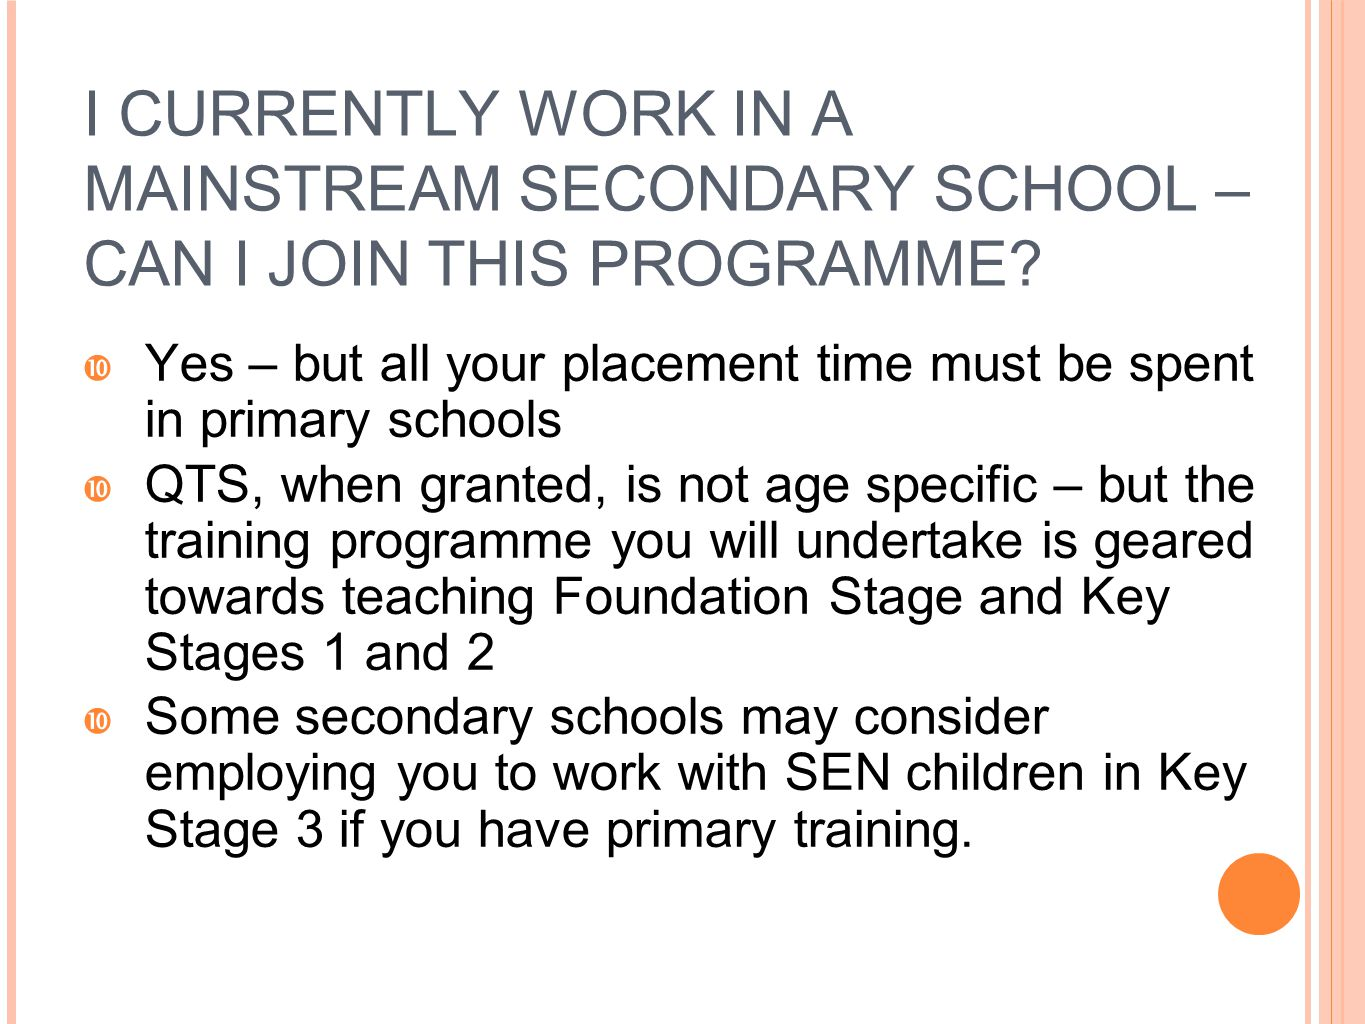 I CURRENTLY WORK IN A MAINSTREAM SECONDARY SCHOOL – CAN I JOIN THIS PROGRAMME